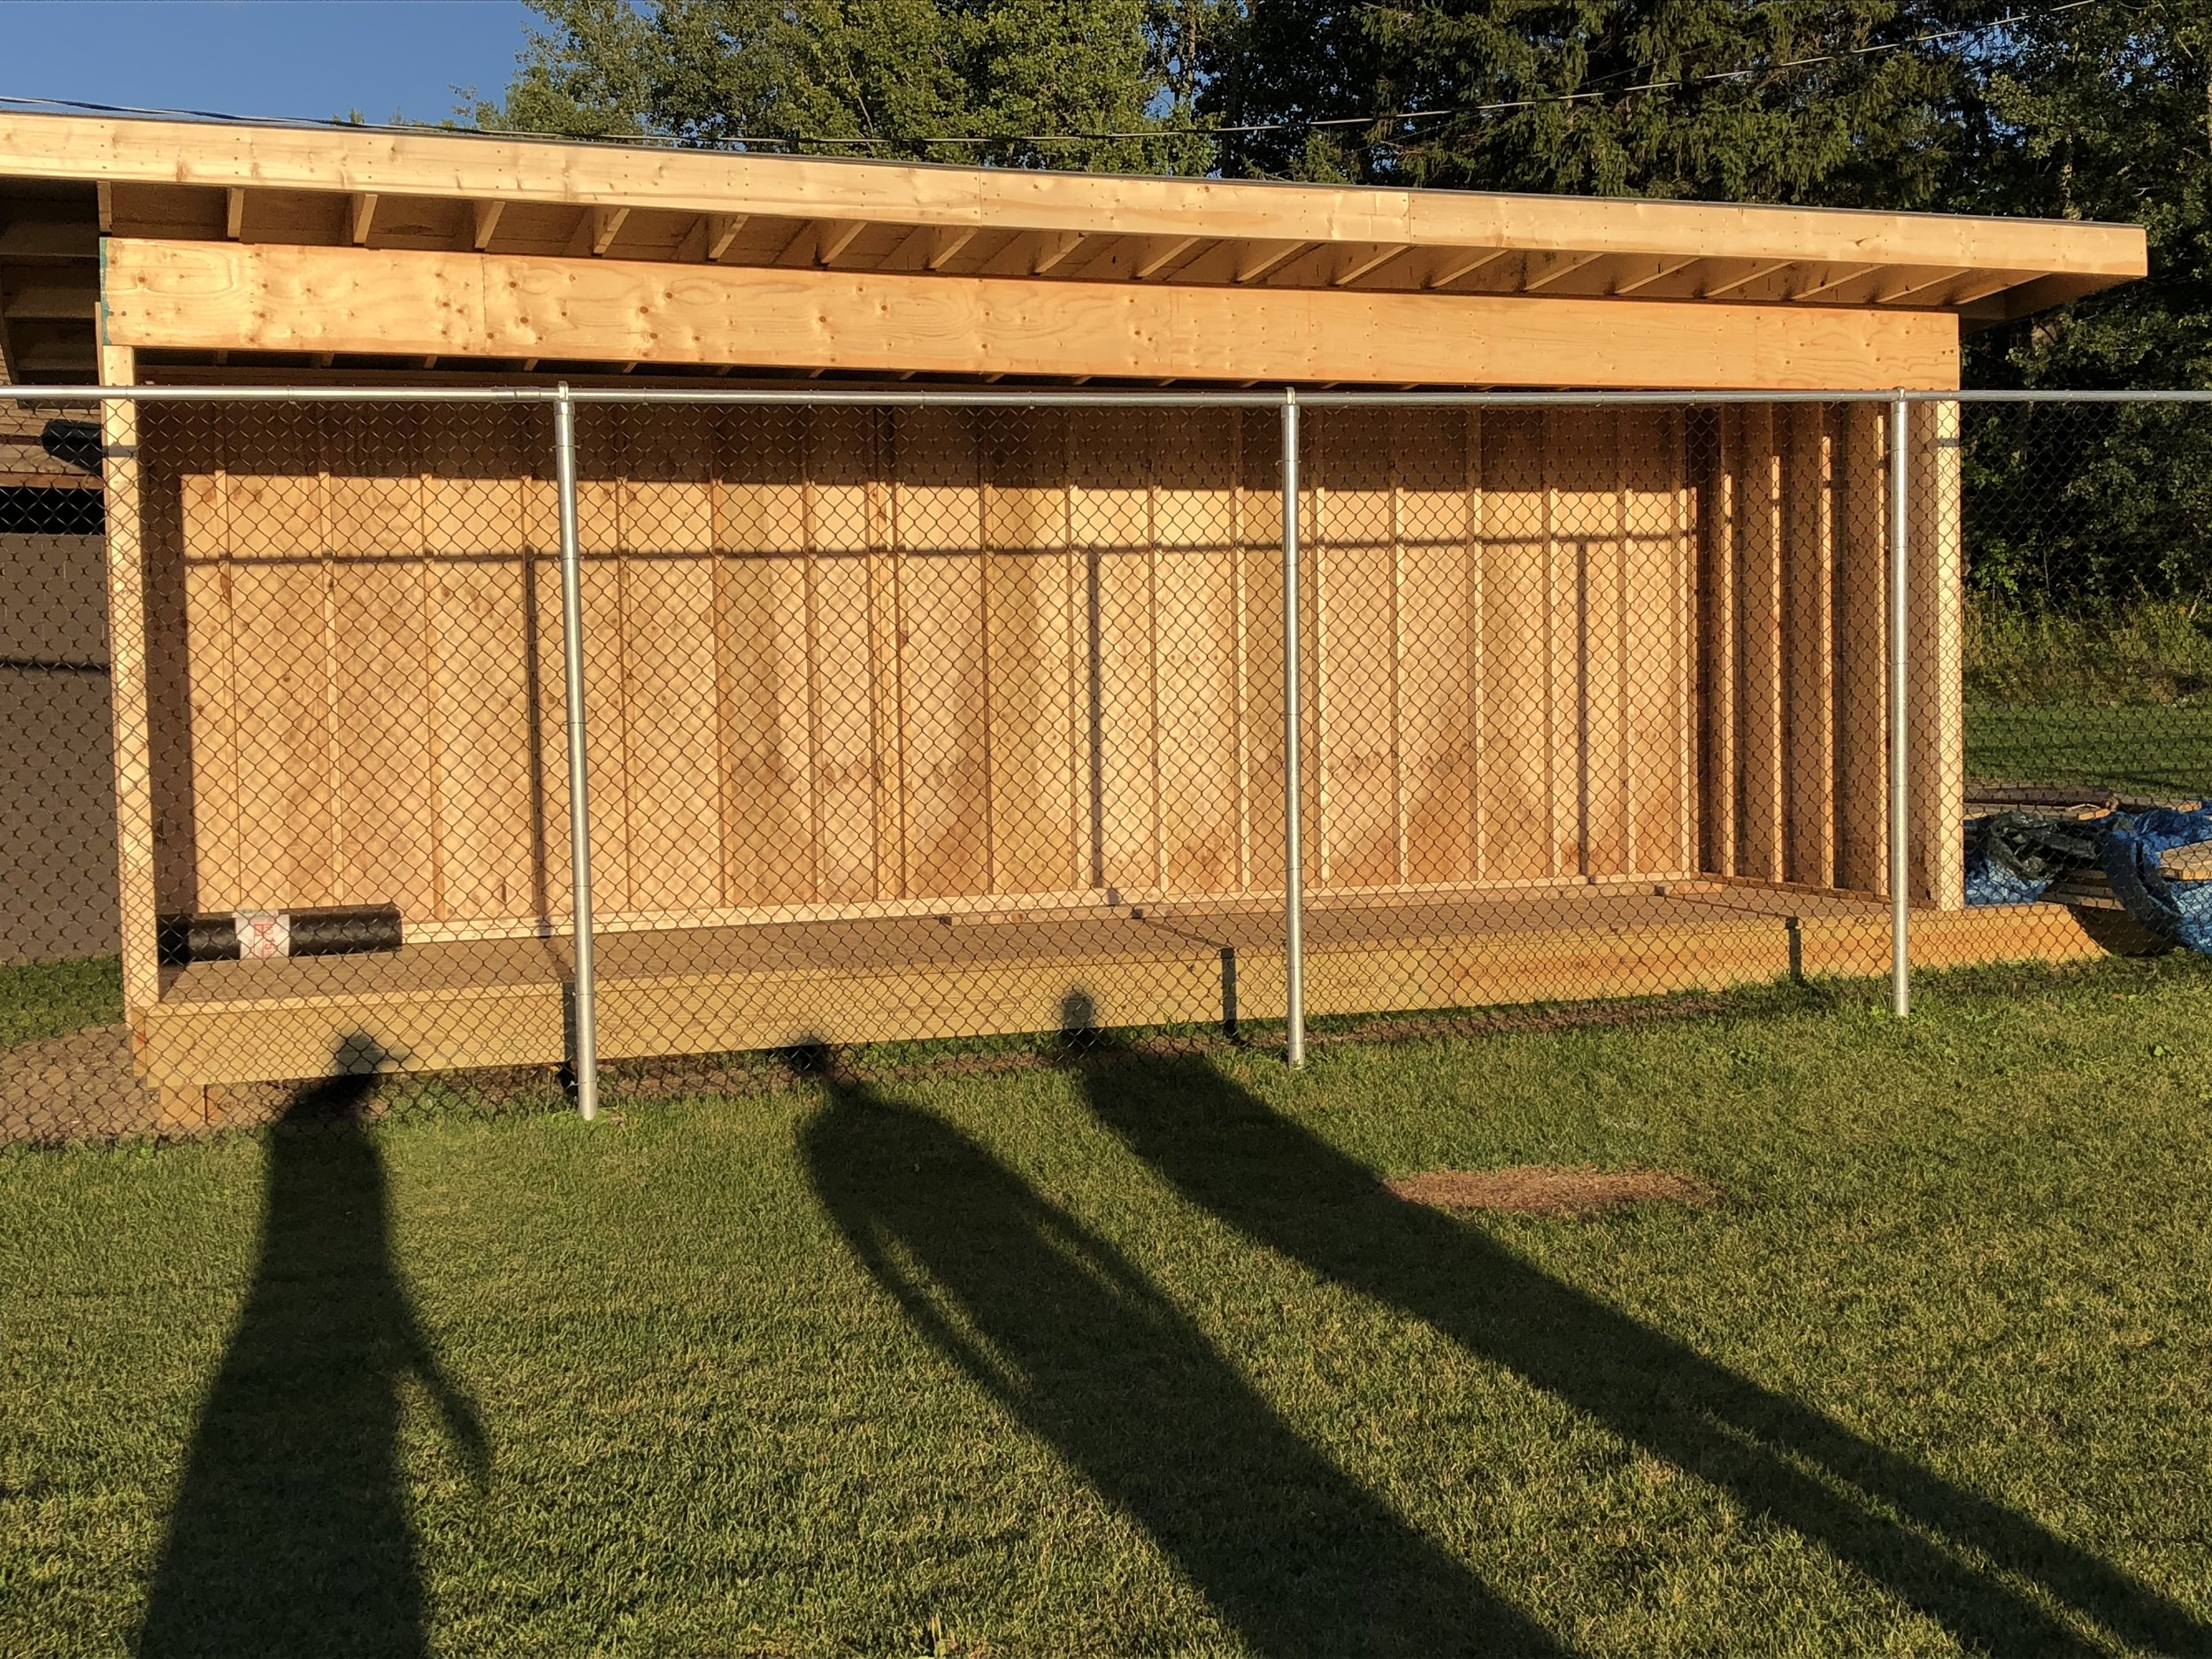 You are looking a brand new above-ground dug-out that volunteers of the Tupper Lake Youth Baseball and Softball Association erected in one day Saturday behind the backstop fence at the new Little League diamond in the Tupper Lake Municipal Park.